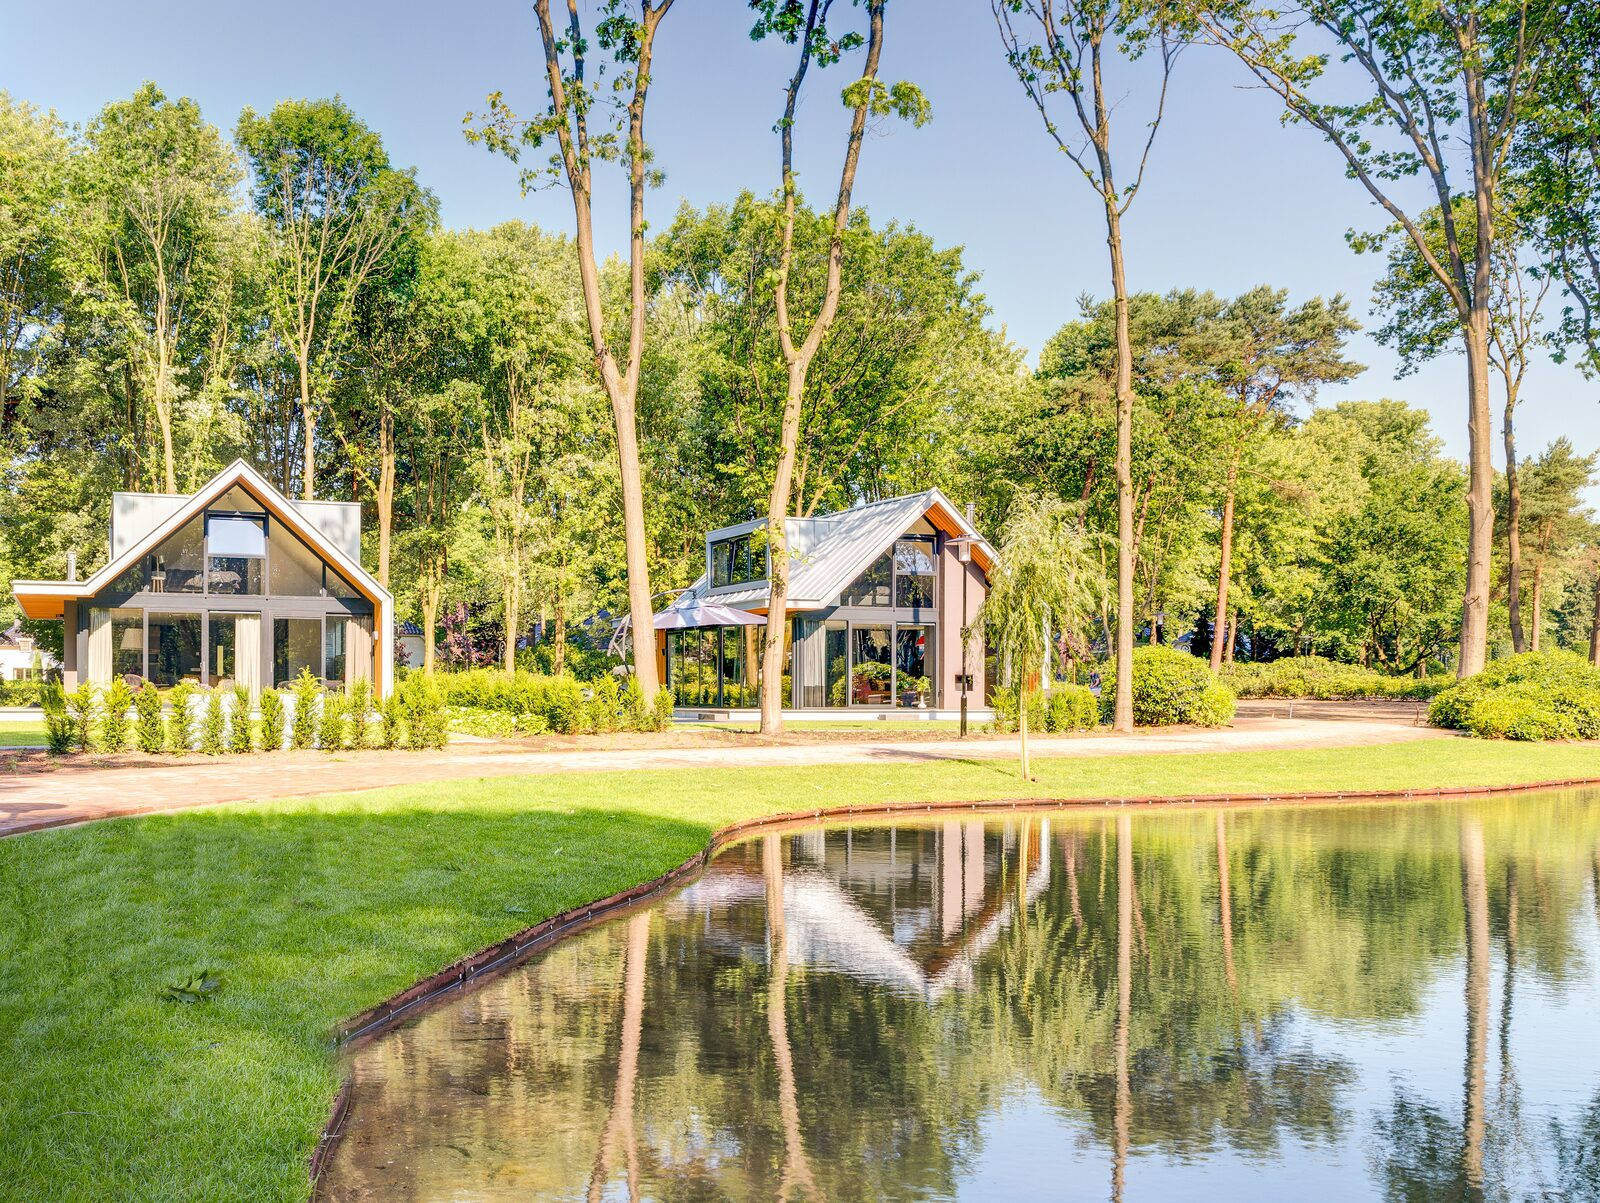 Vacation home on the water in a wooded area